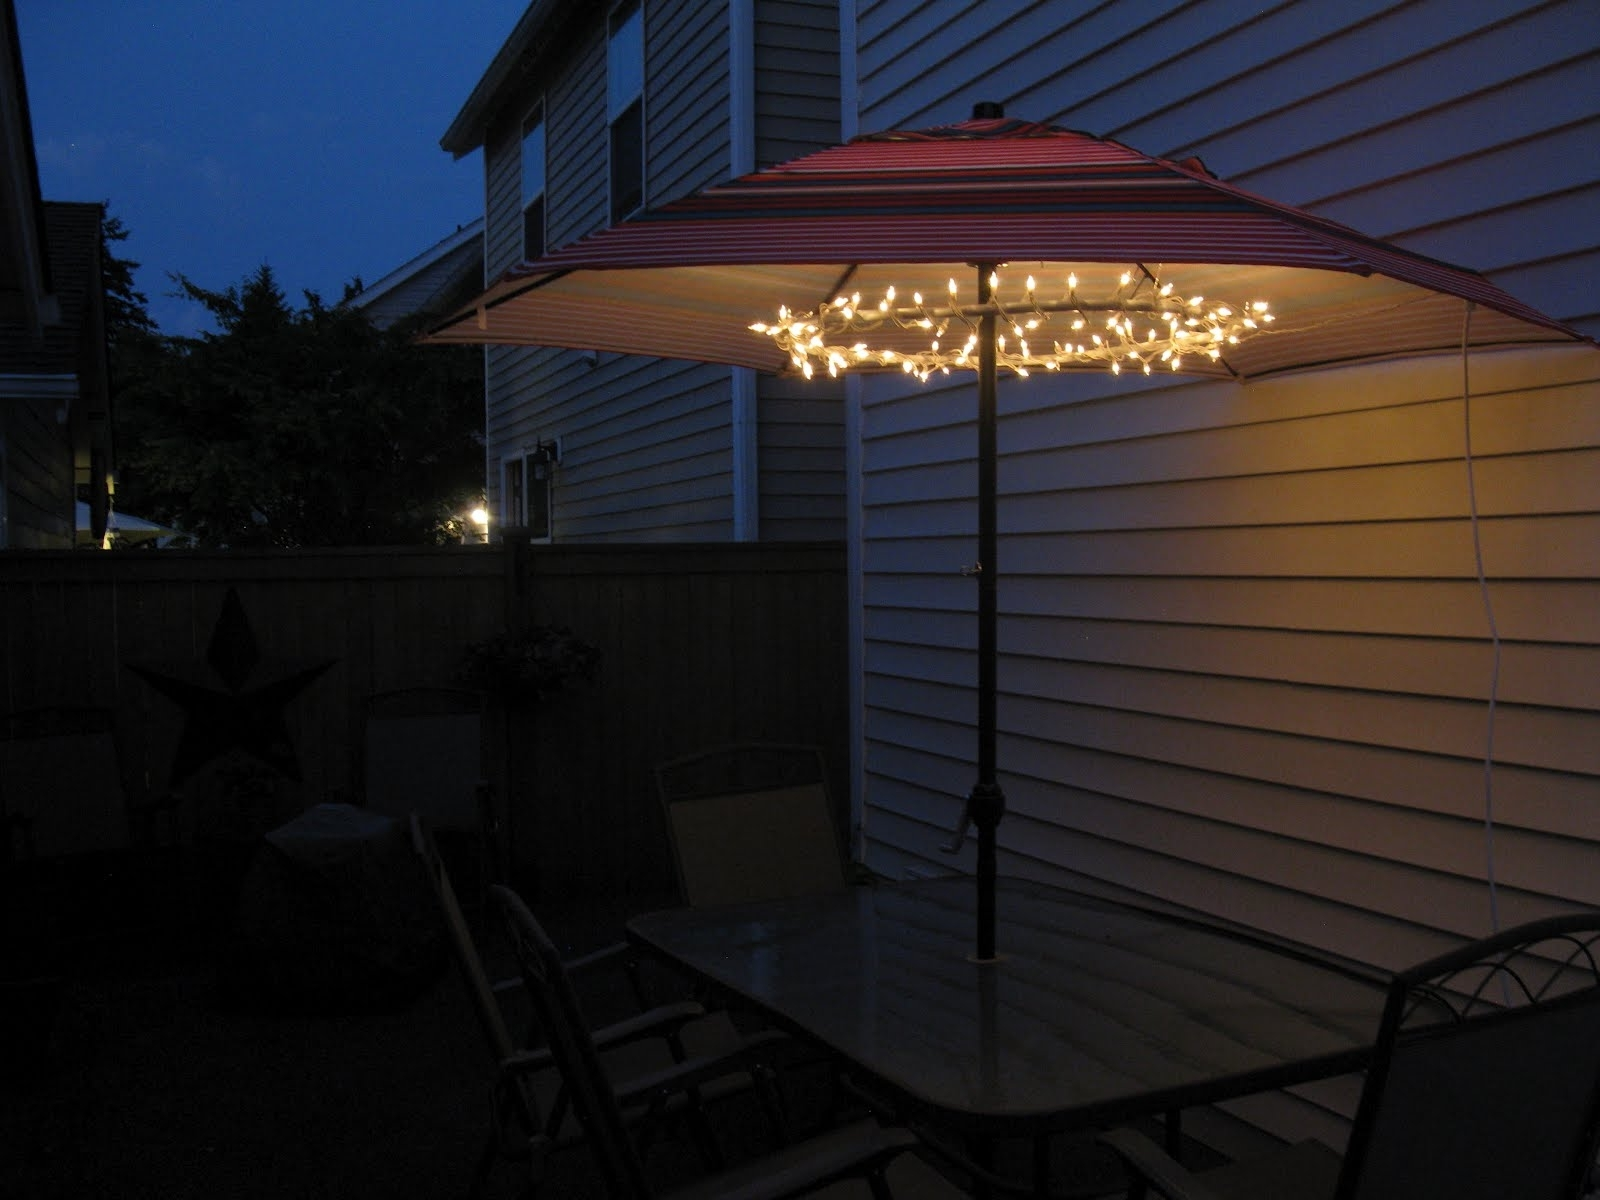 2019 Great Patio Umbrellas With Lights Patio Umbrella Lights For The Pertaining To Outdoor Umbrella Lanterns (View 1 of 20)